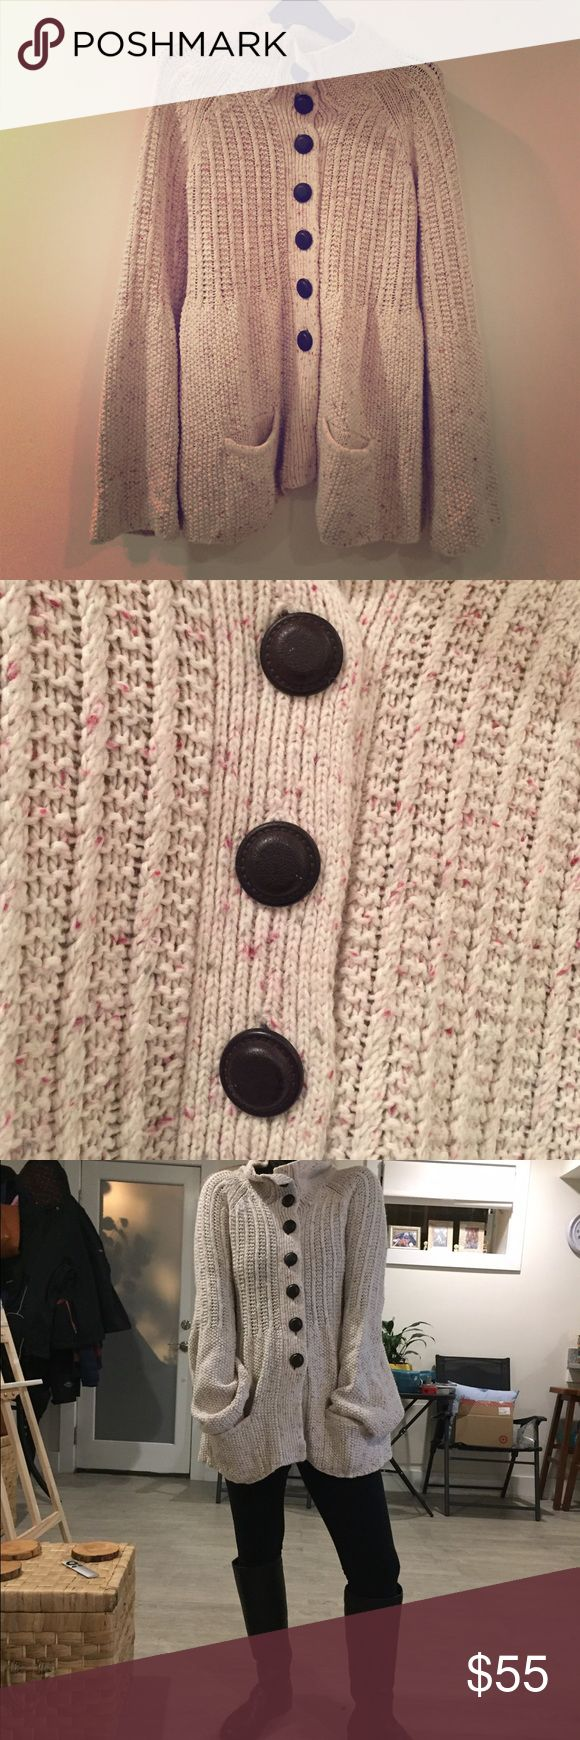 Roxy knitted thick cardigan/sweater 62% Acrylic, 18% Lambswool, 20% Polyamide super warm great for winter or chilly evenings, hardly worn Roxy Sweaters Cardigans